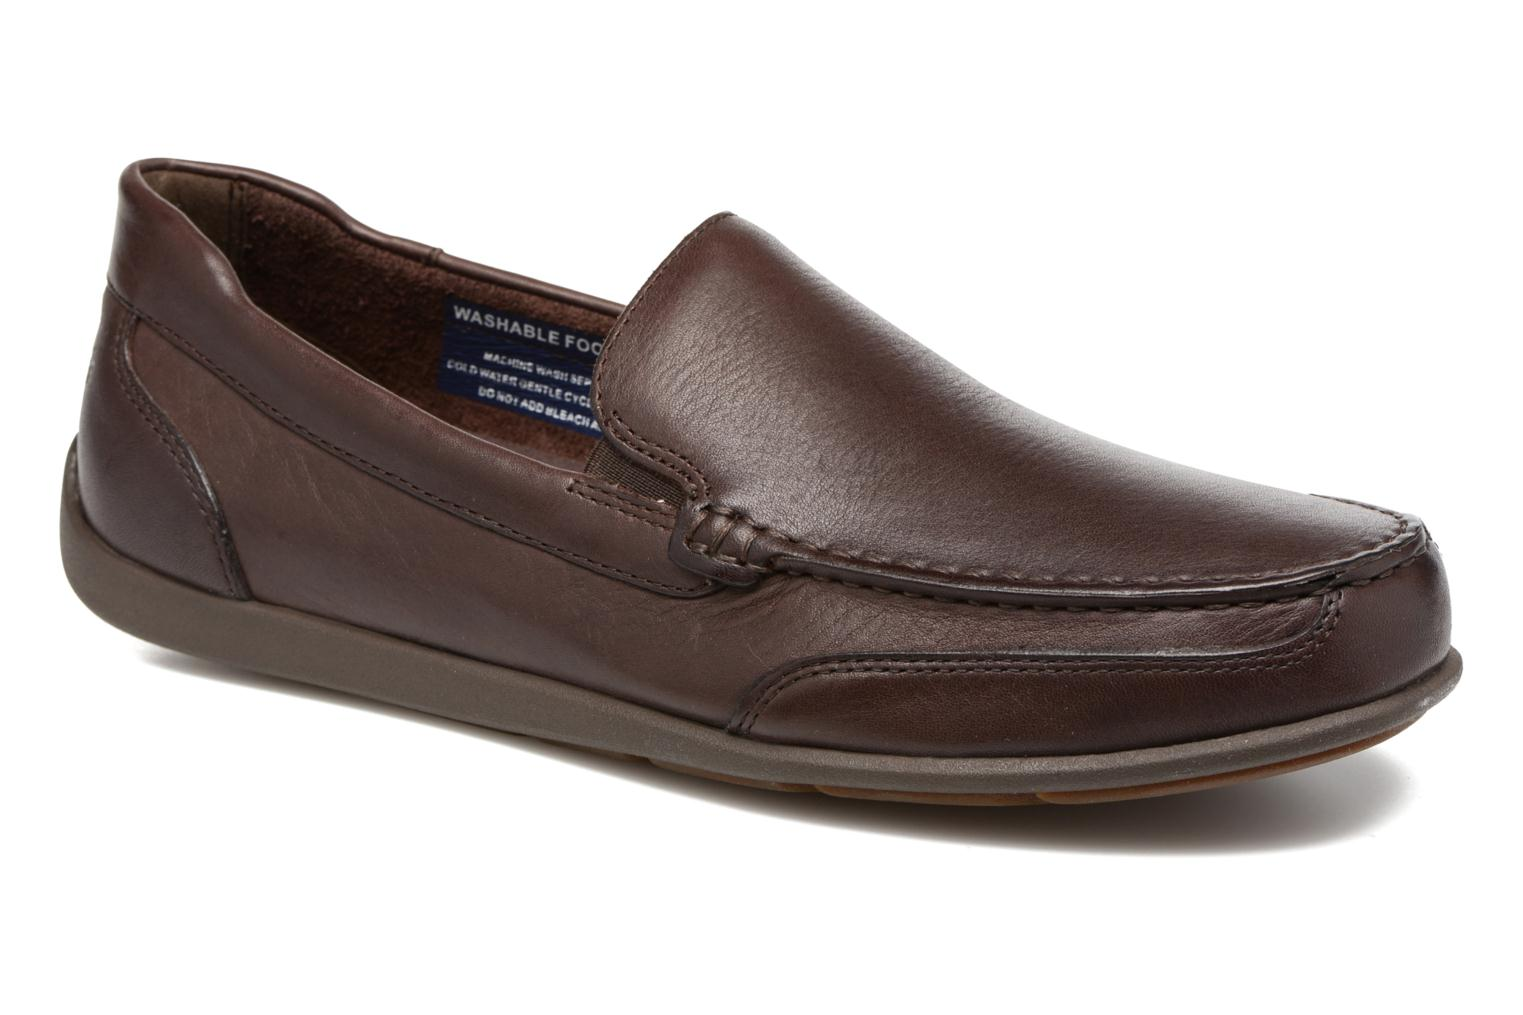 Bl4 Venetian Brown leather